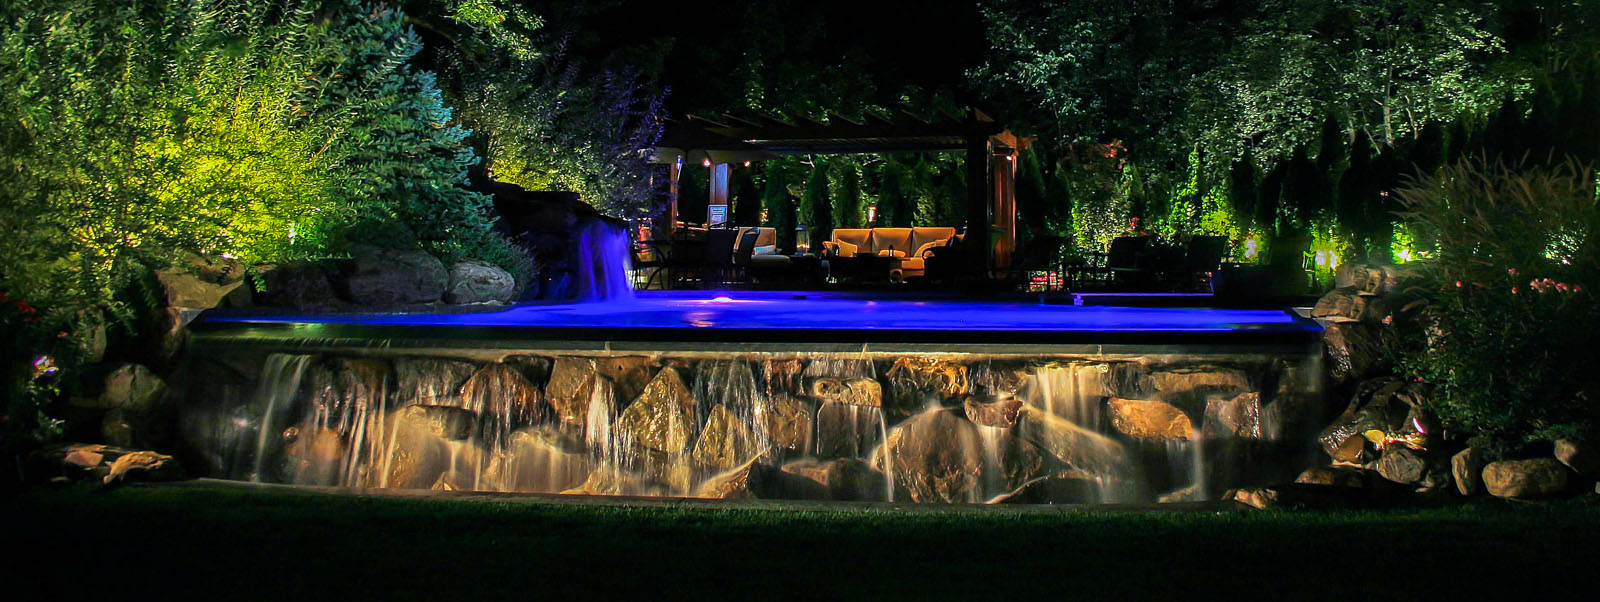 nj landscape lighting design illuminating pool, waterfall, pergola, and surrounding landscape